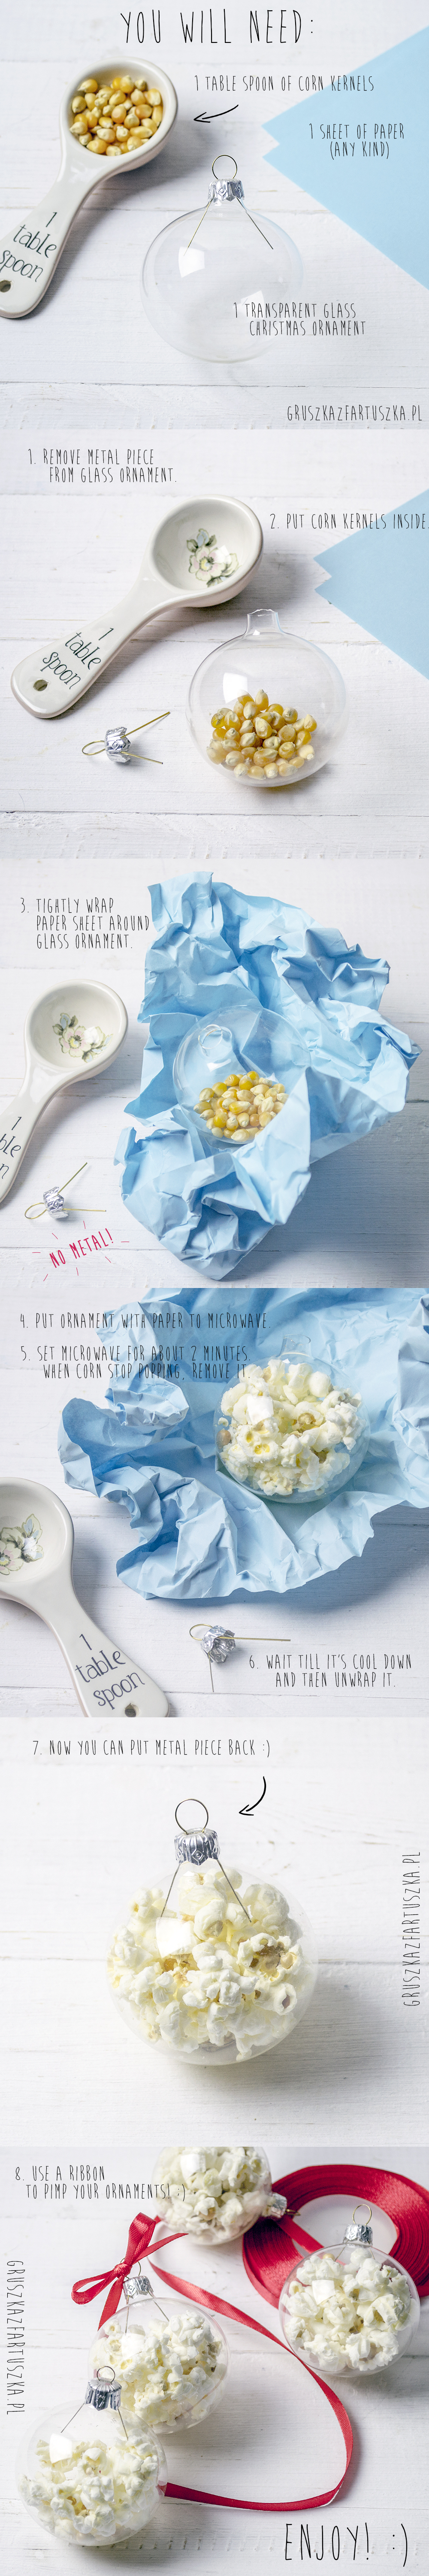 popcorn ornaments tutorial